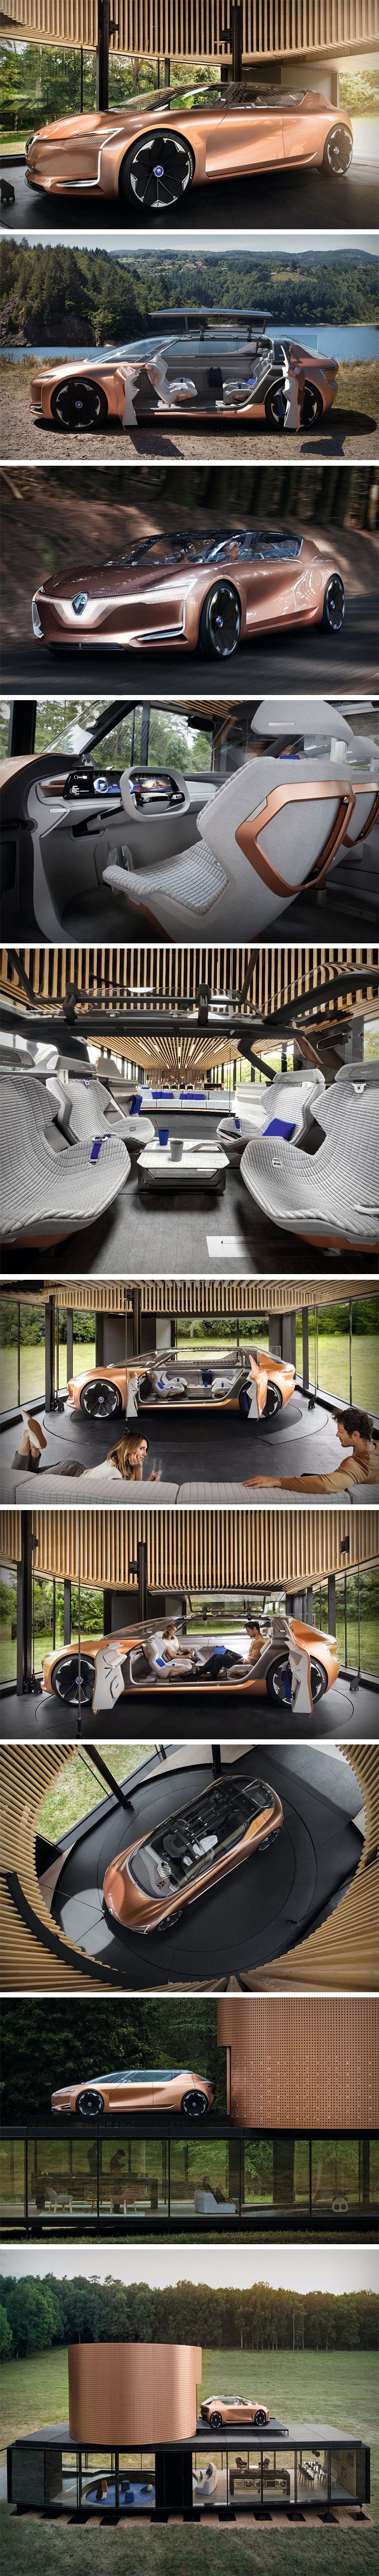 The SYMBIOZ is like nothing we've seen before. The idea of combining transportation and living spaces seems like something absurd to fathom. Toying with this idea, the SYMBIOZ is an extension of the future – connected – home. The SYMBIOZ doesn't skip a beat. The interior of the vehicle, designed by Aleksandra Gaca, is breathtaking. The inside of the SYMBIOZ is quite homely and inviting.